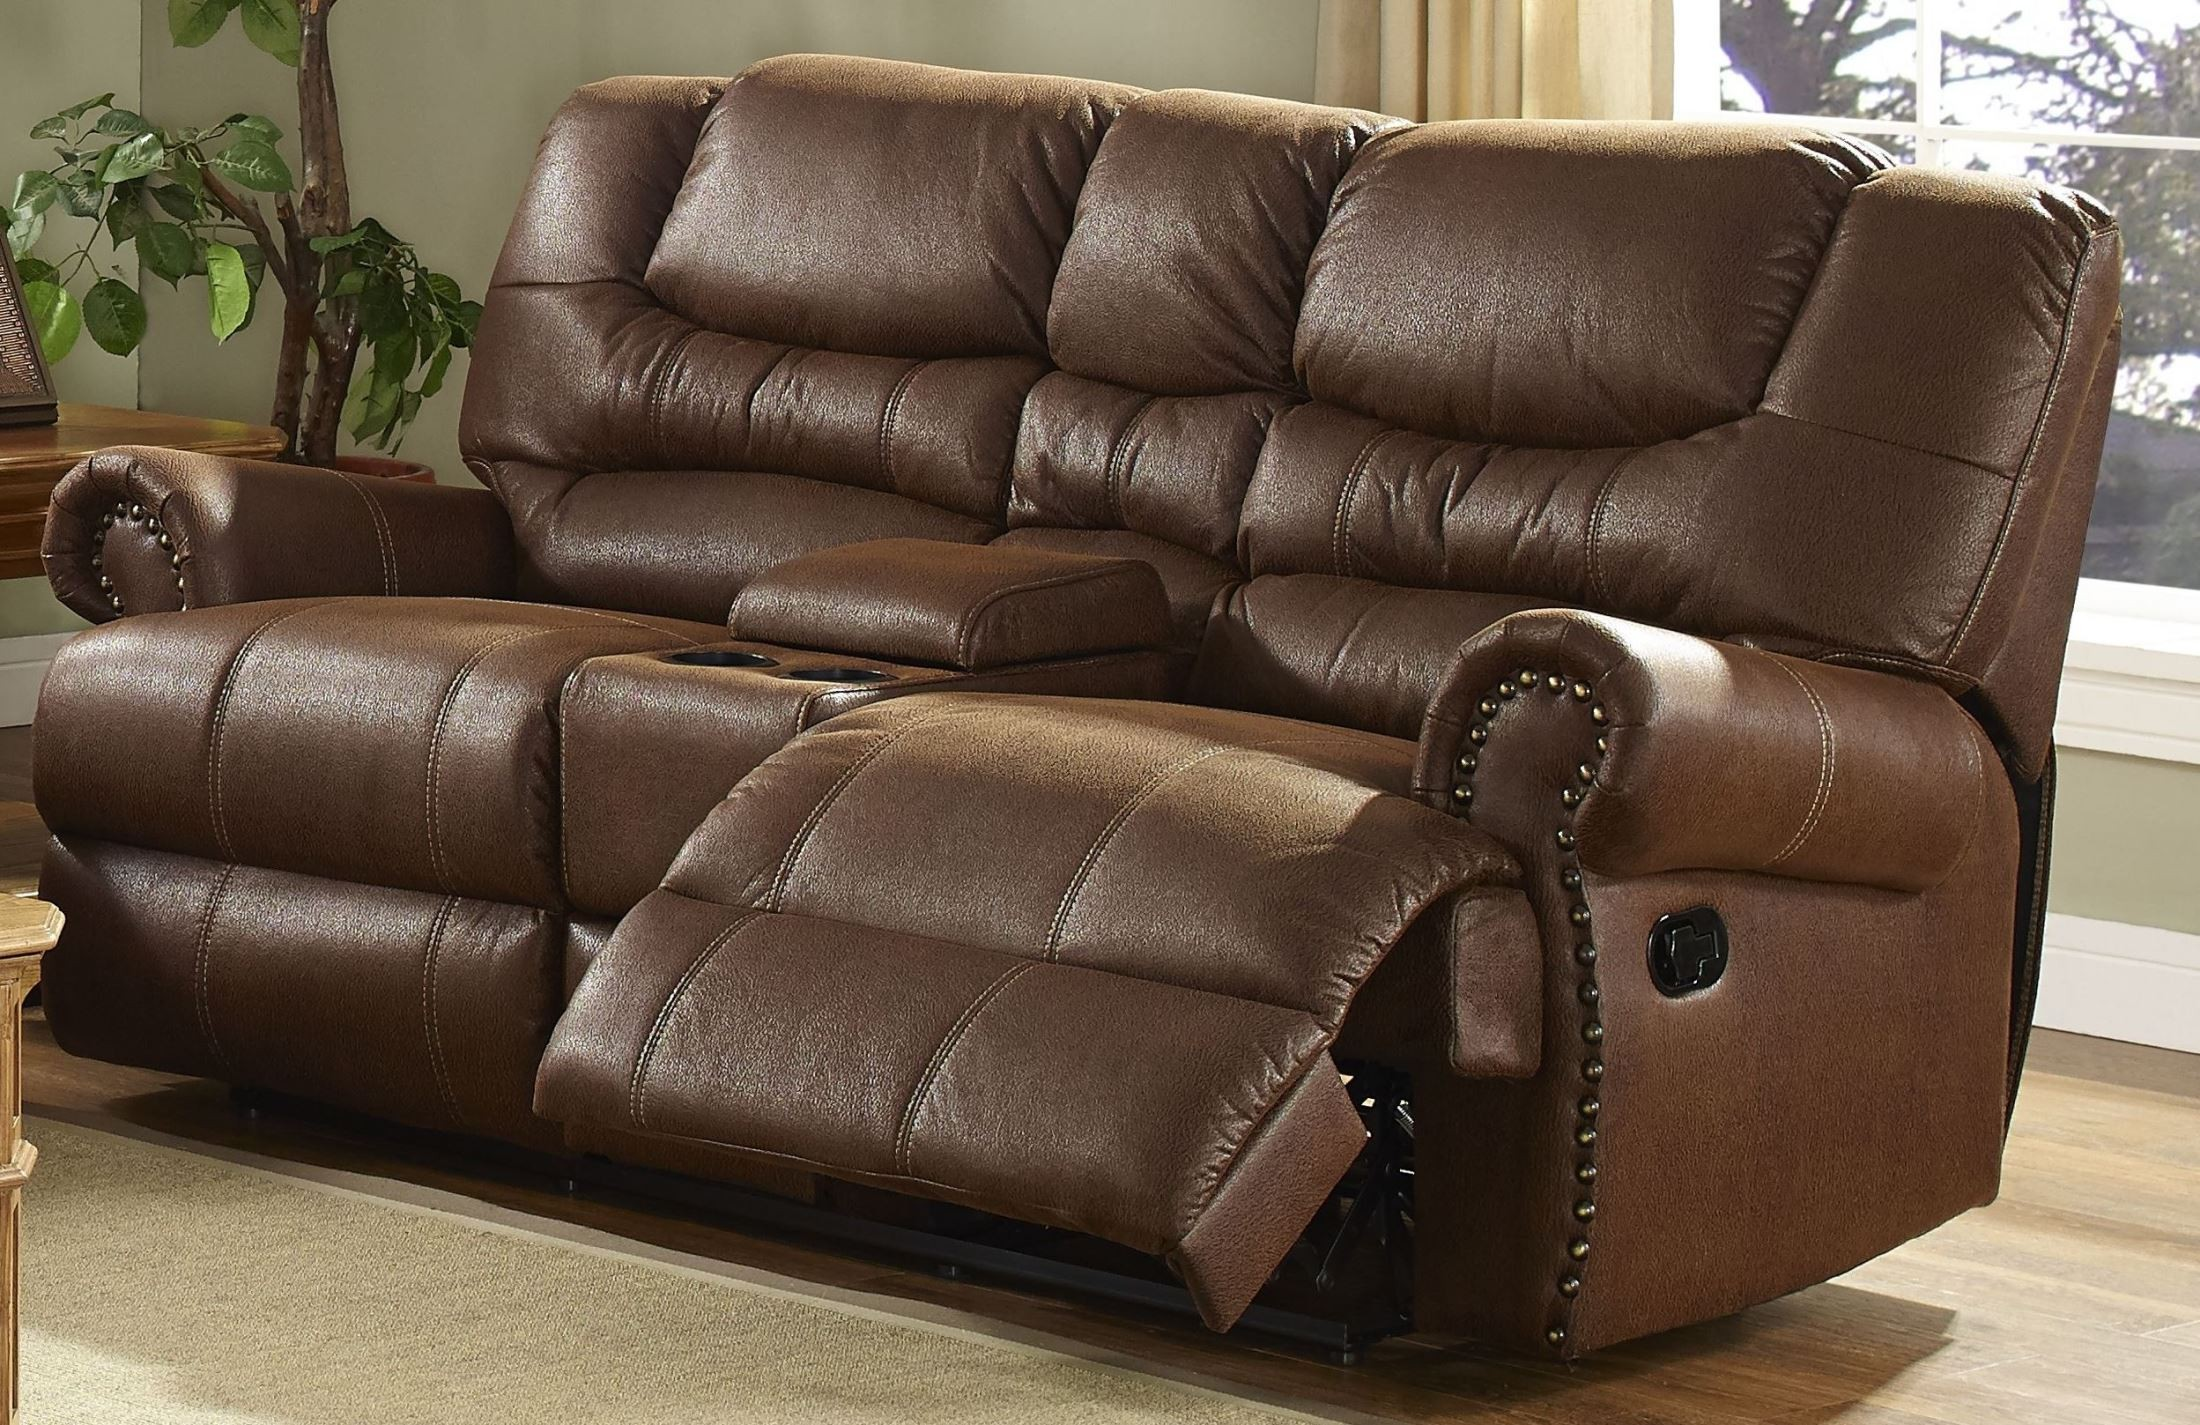 Laredo Cordova Mocha Dual Recliner Loveseat With Console From New Classics 20 395 25 Moc